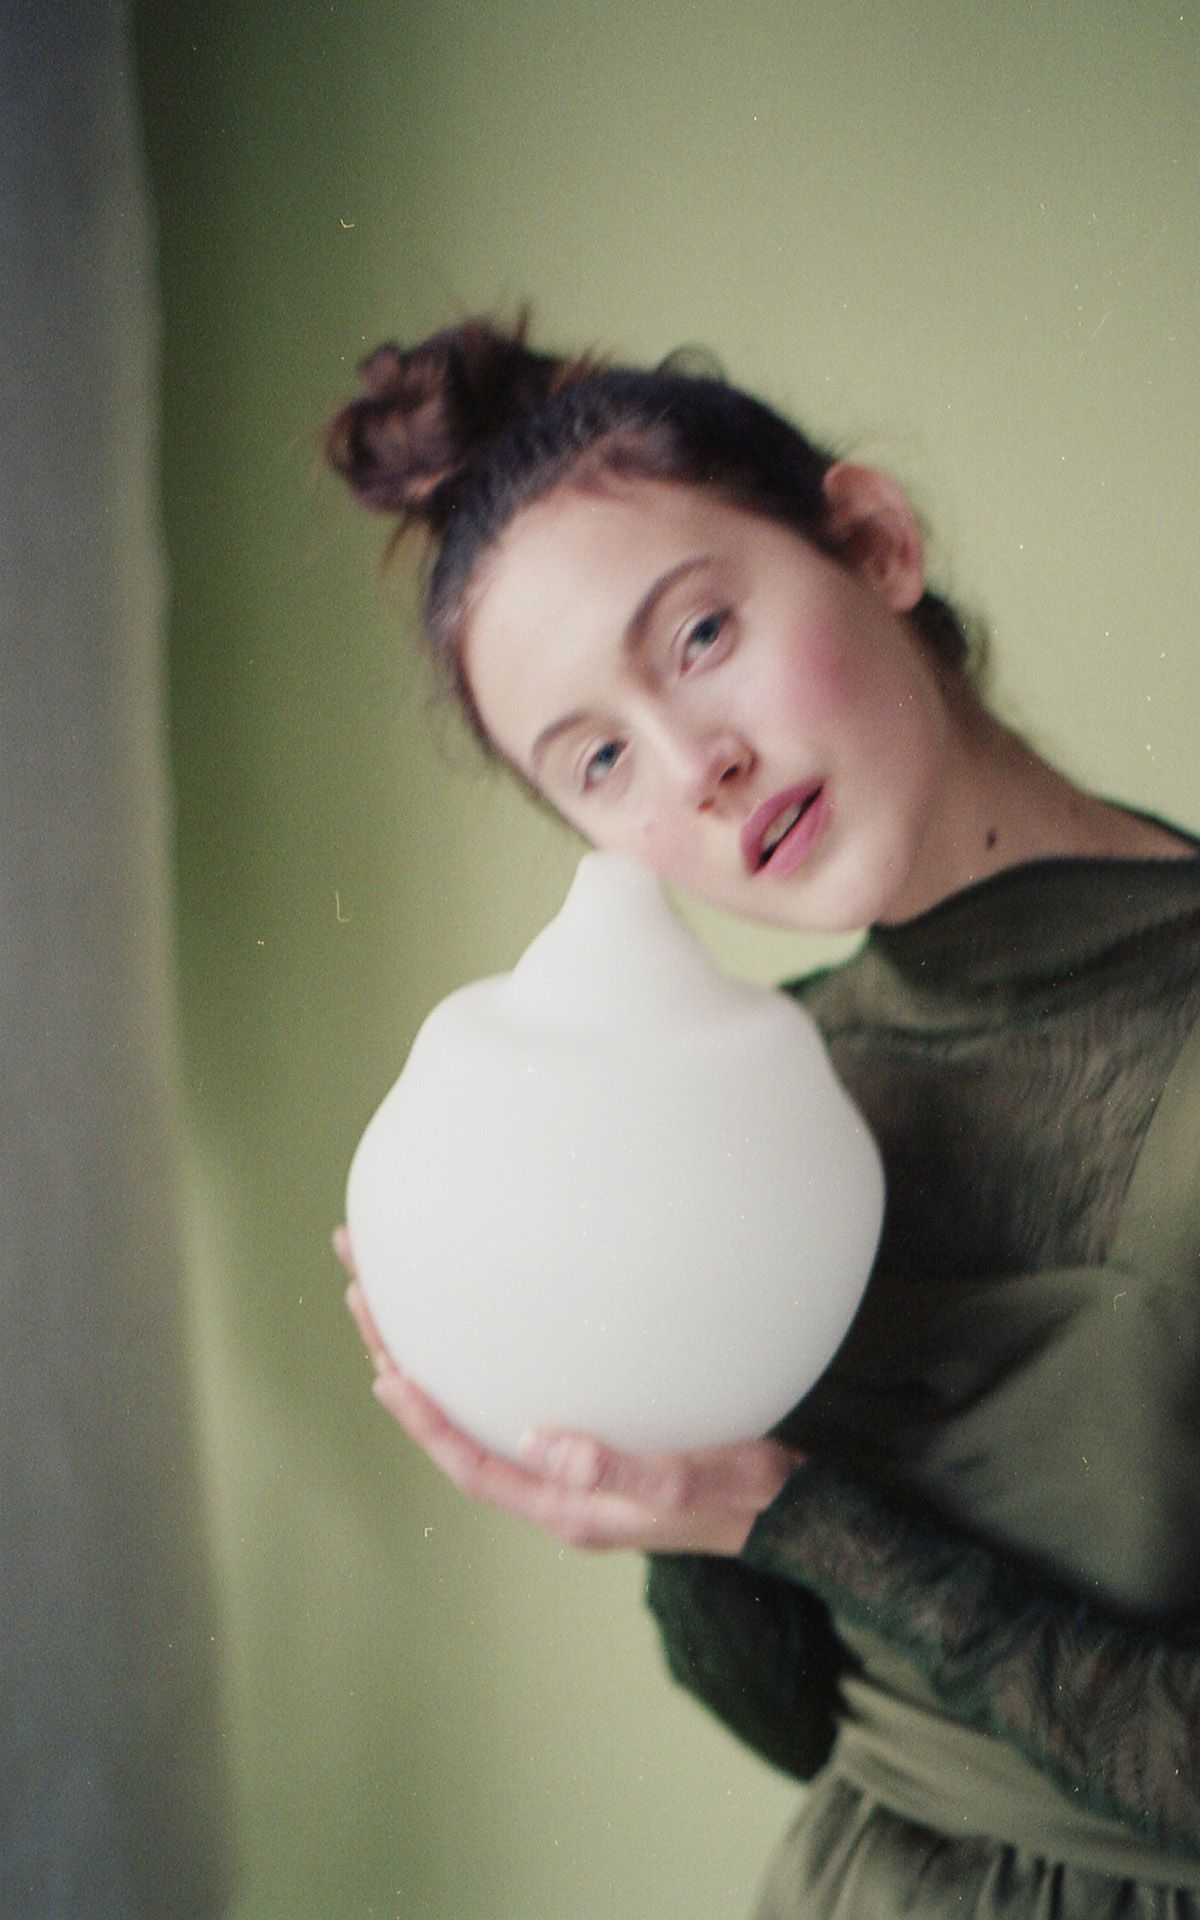 female model Jana on light green paper background holding small white vase in her hands wearing dark green clothes looking at camera photographed by Naomie from Studio TB for project Sculpting Jana